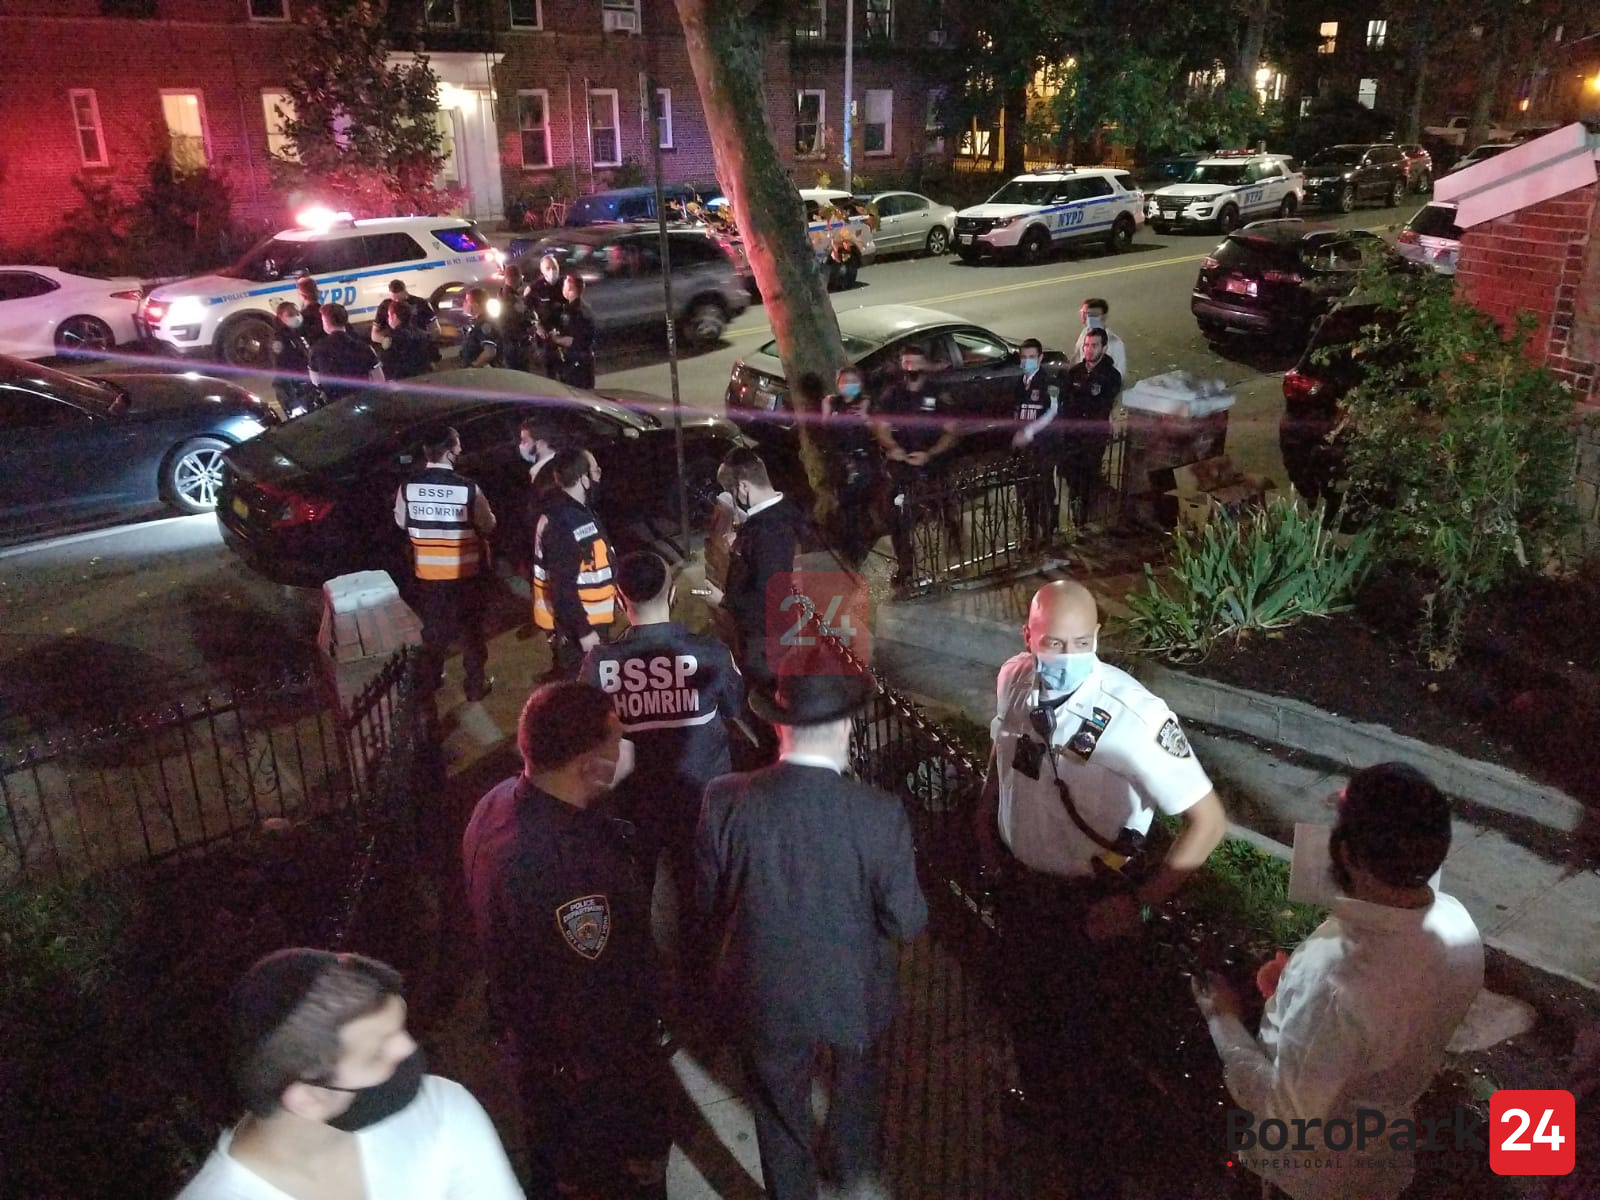 Shots Fired Outside A Shul on 18th Ave